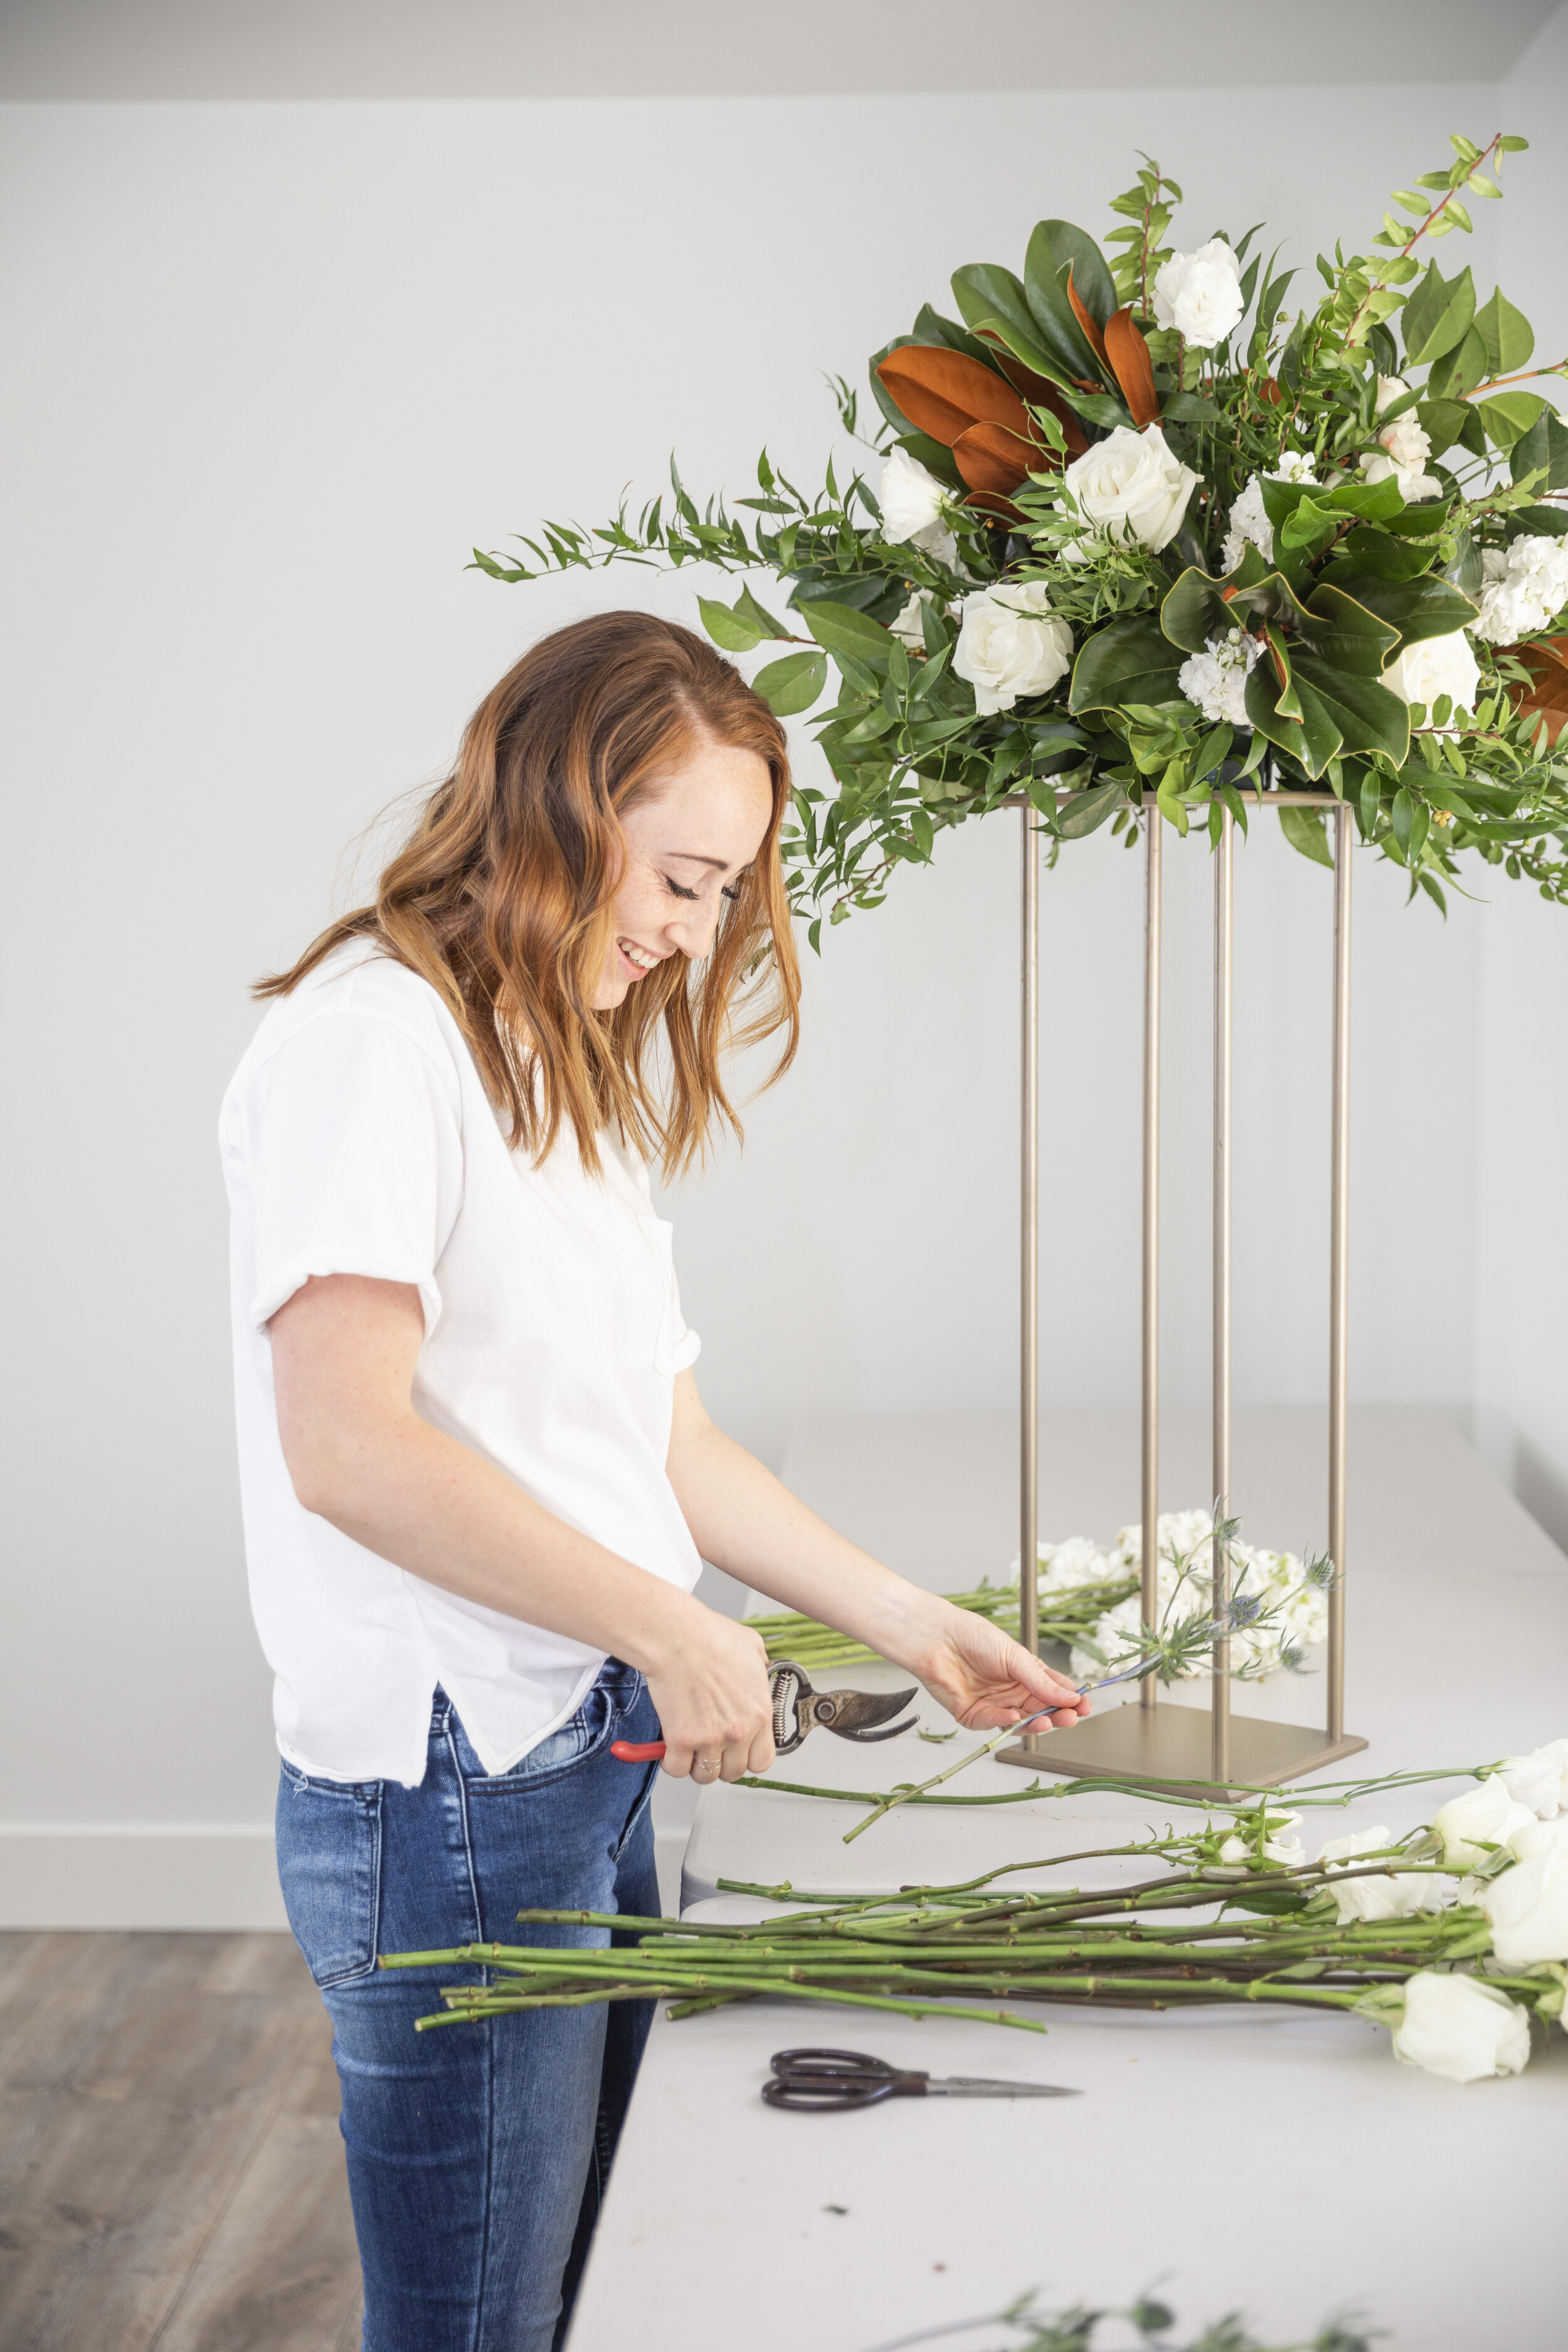 professional florists tips reach out to your florist three to four months before your wedding do some research on your own before meeting with your florist to have a more productive consultation have a general idea of what you would like and need sarah from blushing rose floral #floristtips #tipsandtricks #vendorspotlight #blushingrosefloral #florist #utahcounty #wedding #inspiration #help #flowers